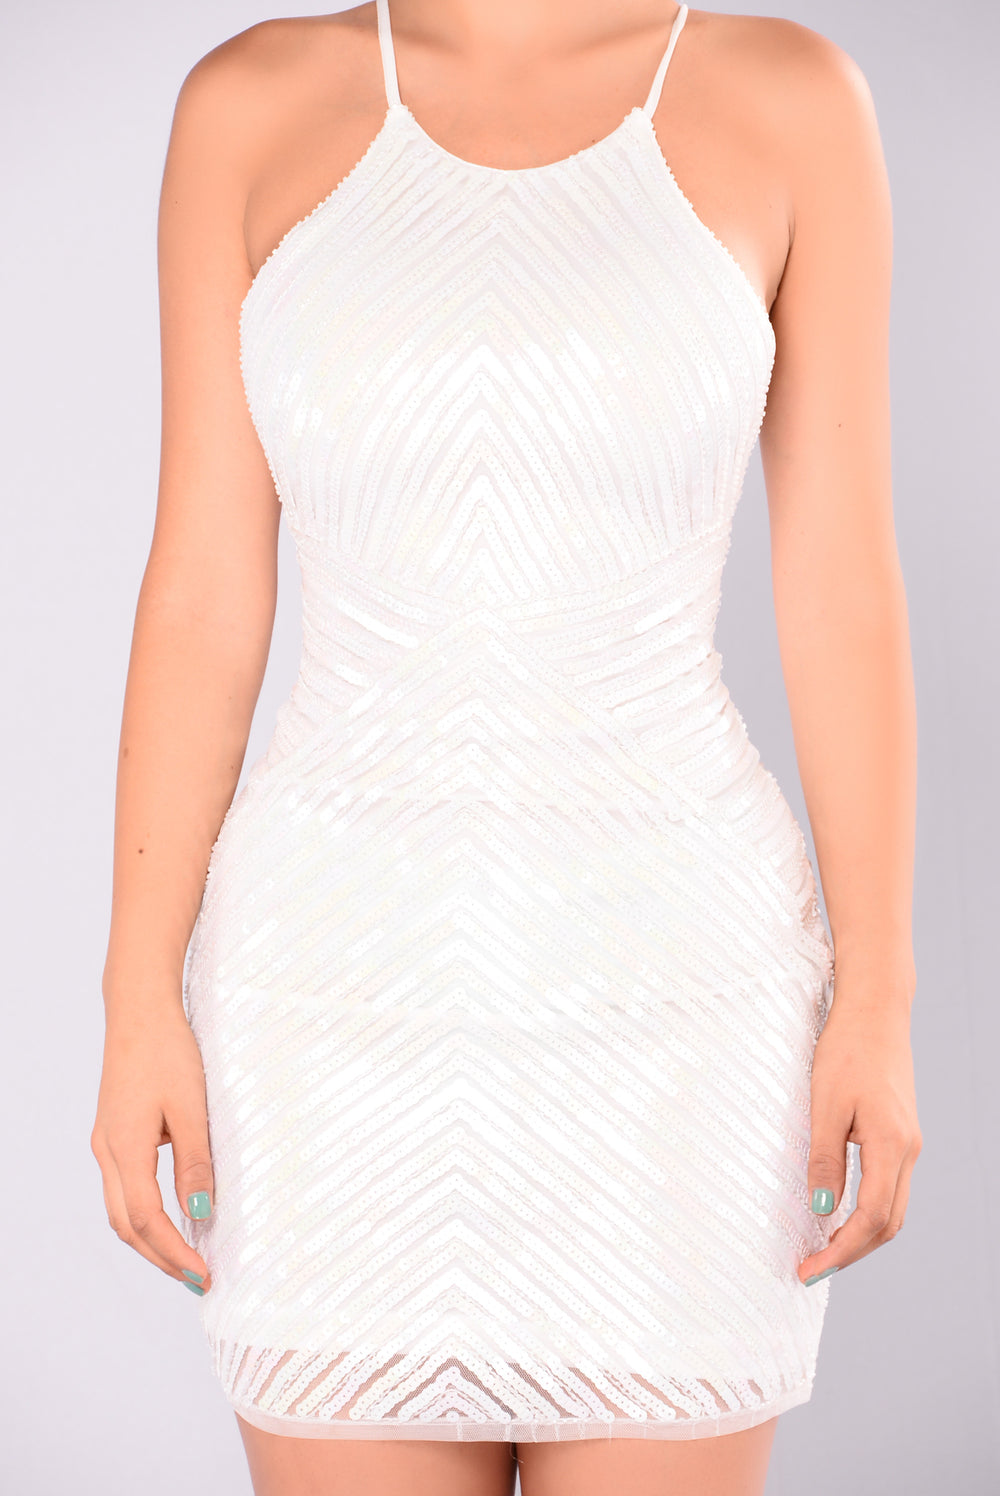 Ice Queen Sequin Dress - White